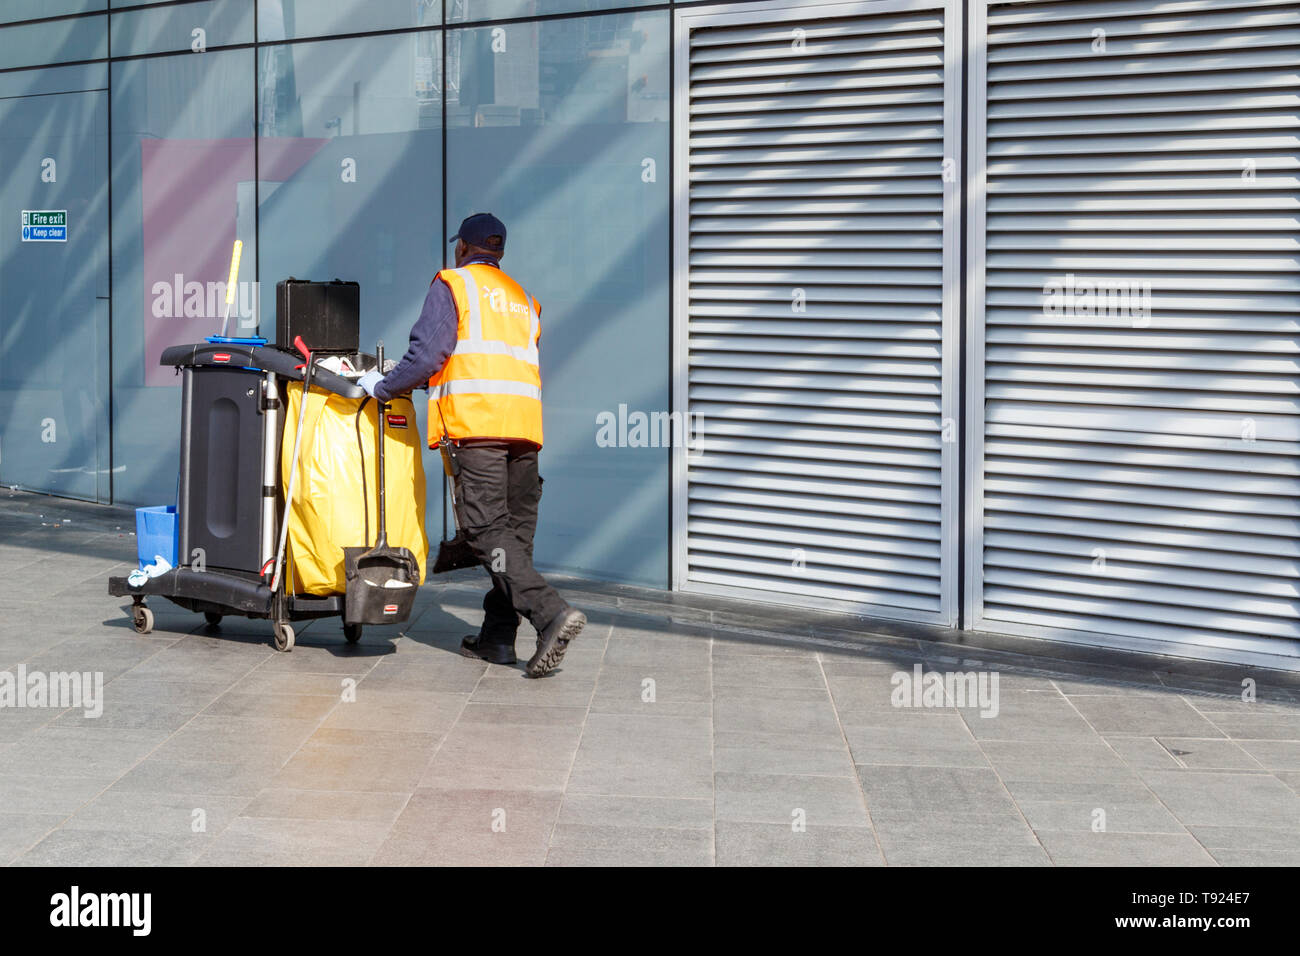 A male street cleaner pushing a cleaning trolley in the redeveloped area of King's Cross, London, UK Stock Photo